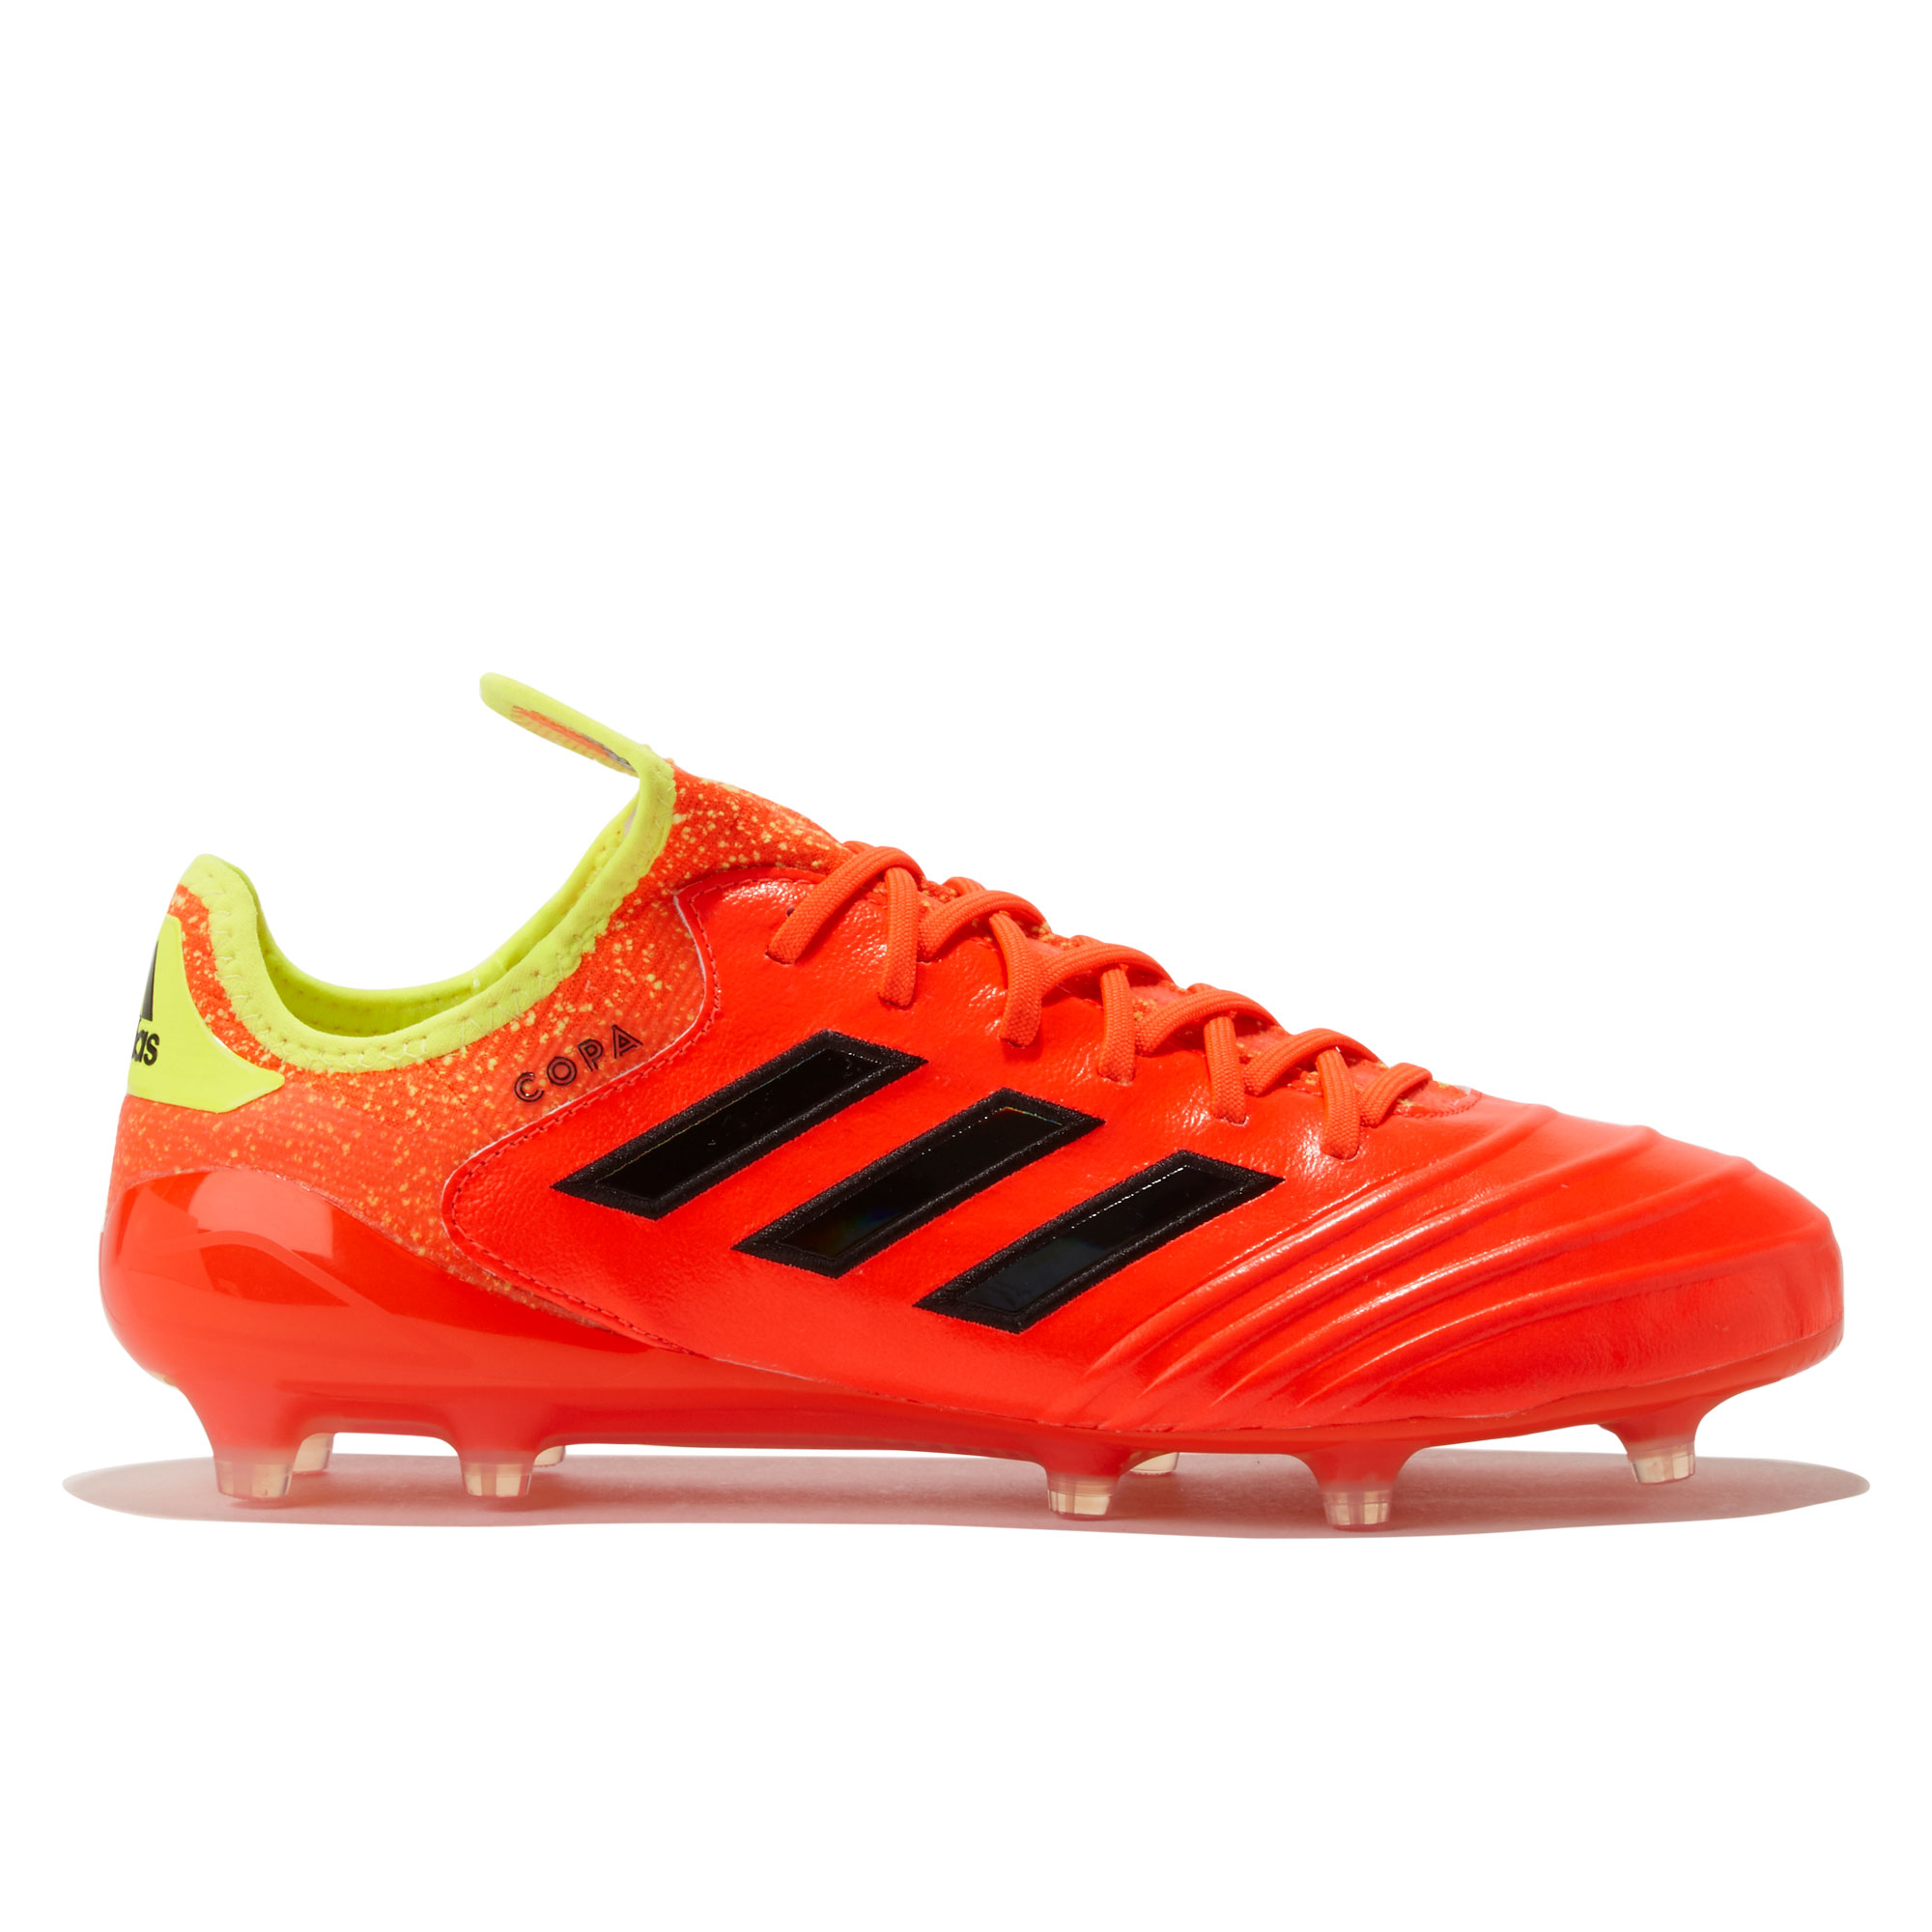 Image of adidas Copa 18.1 Firm Ground Football Boots - Red